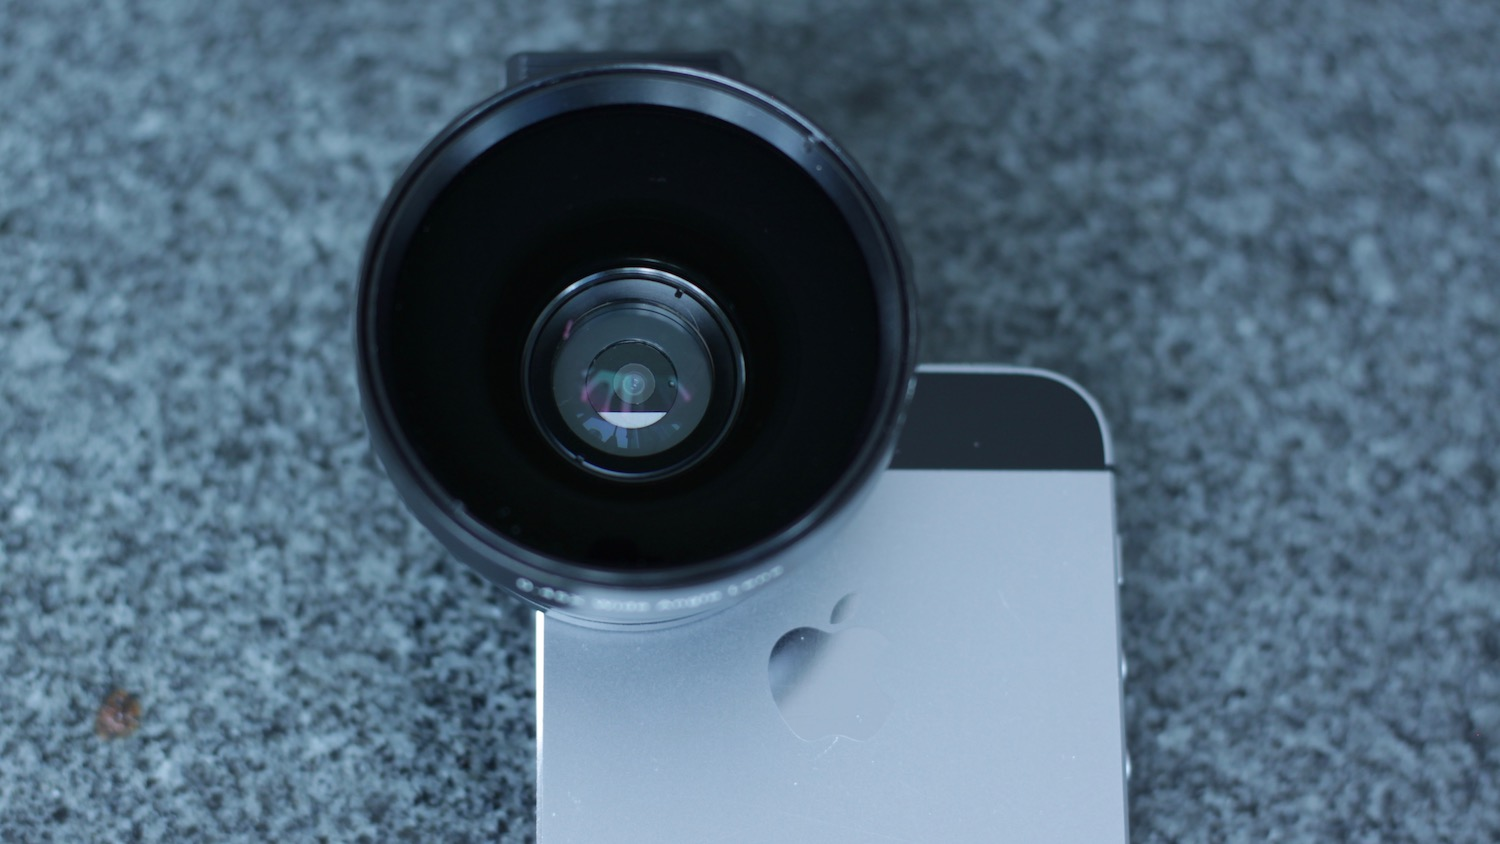 Aukey iPhone Ora Camera Lens on iPhone 5s